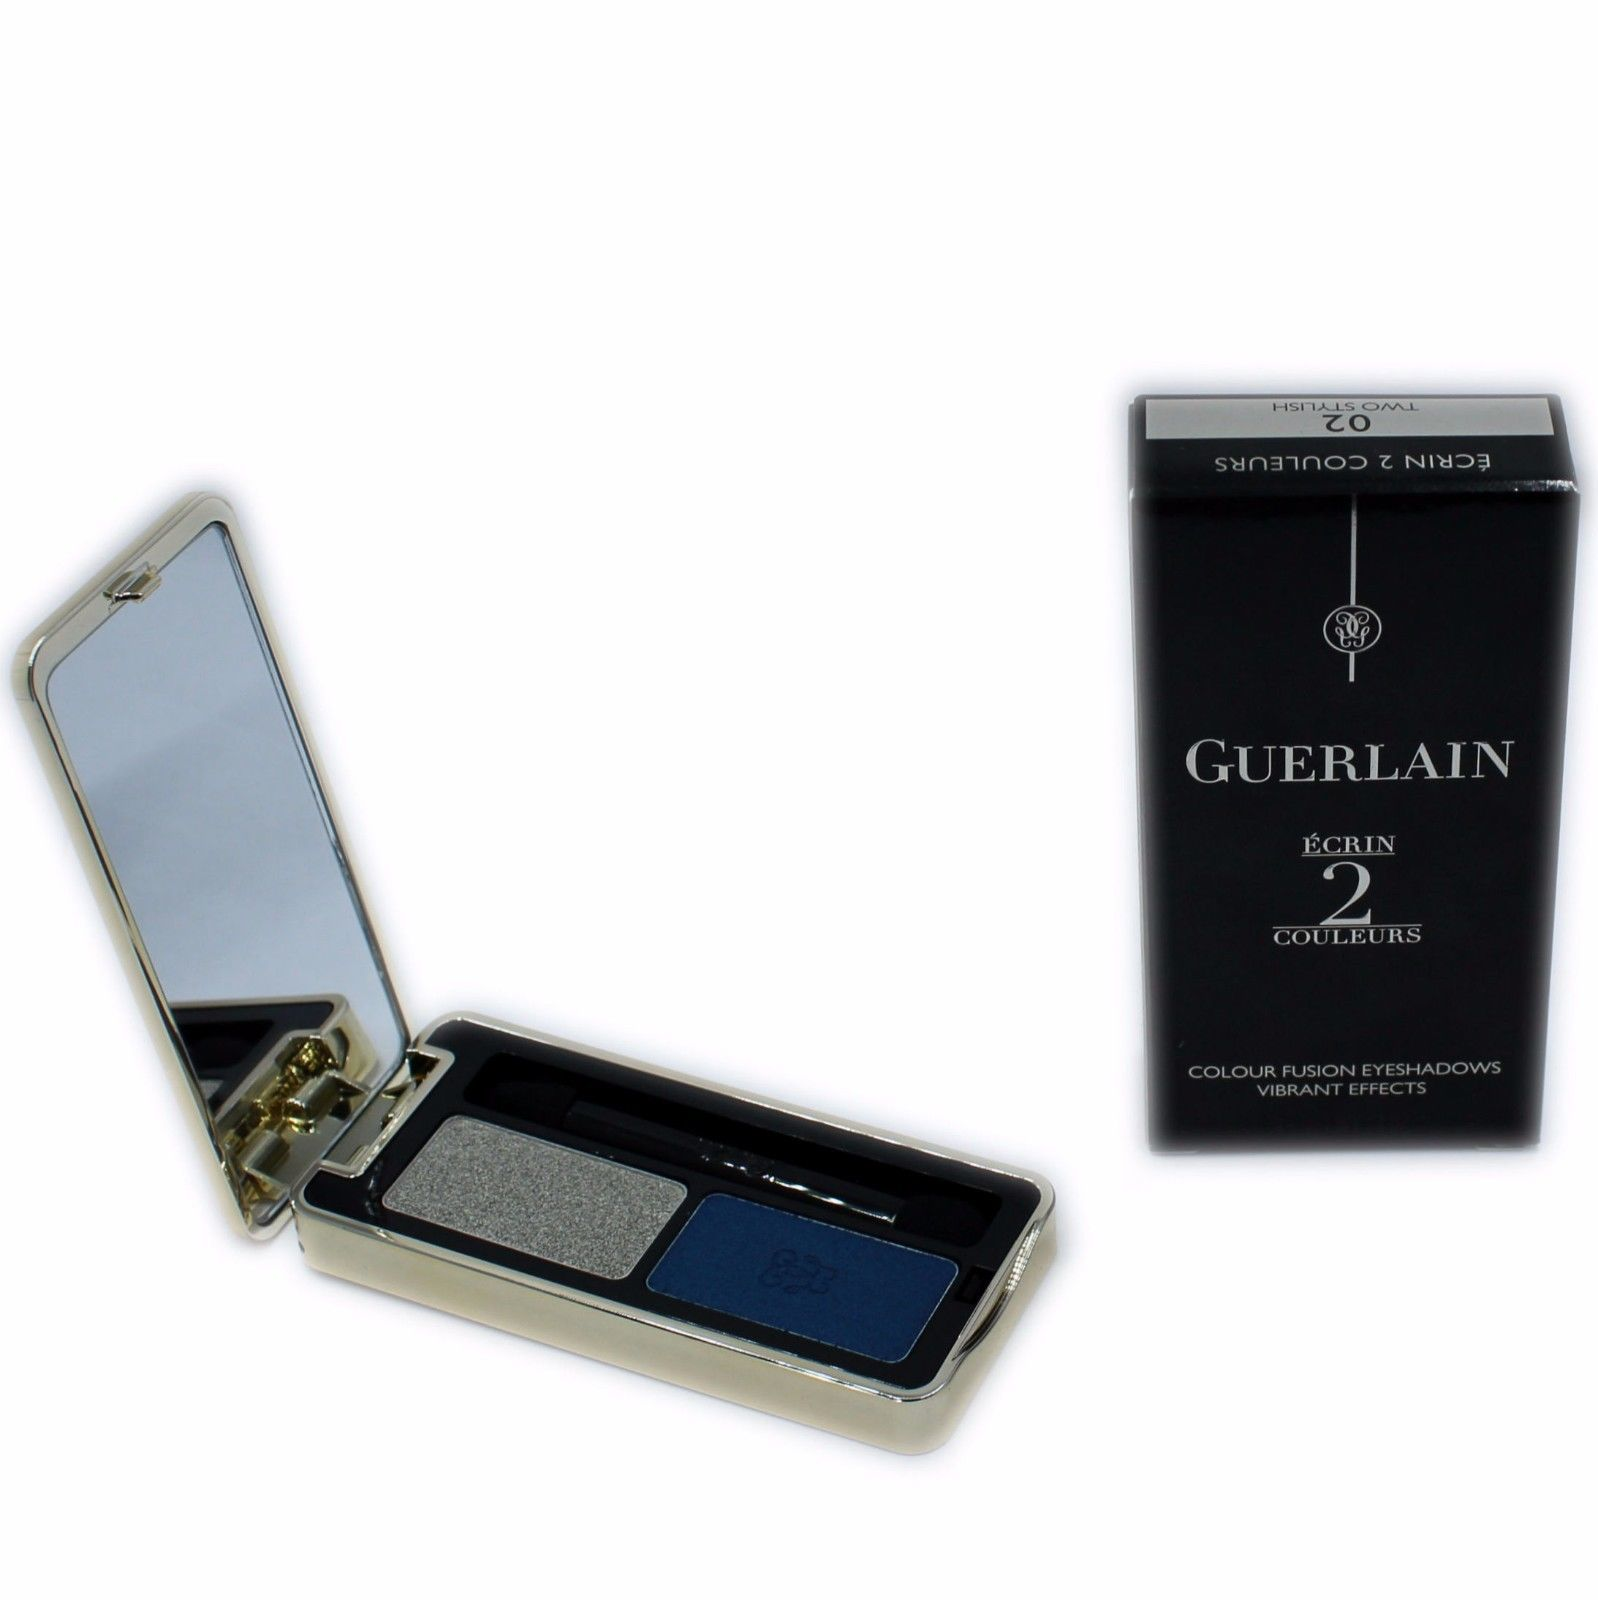 Primary image for GUERLAIN ECRIN 2 COULEURS COLOUR FUSION EYESHADOWS EFFETS VIBRANTS 4G #02-G41388